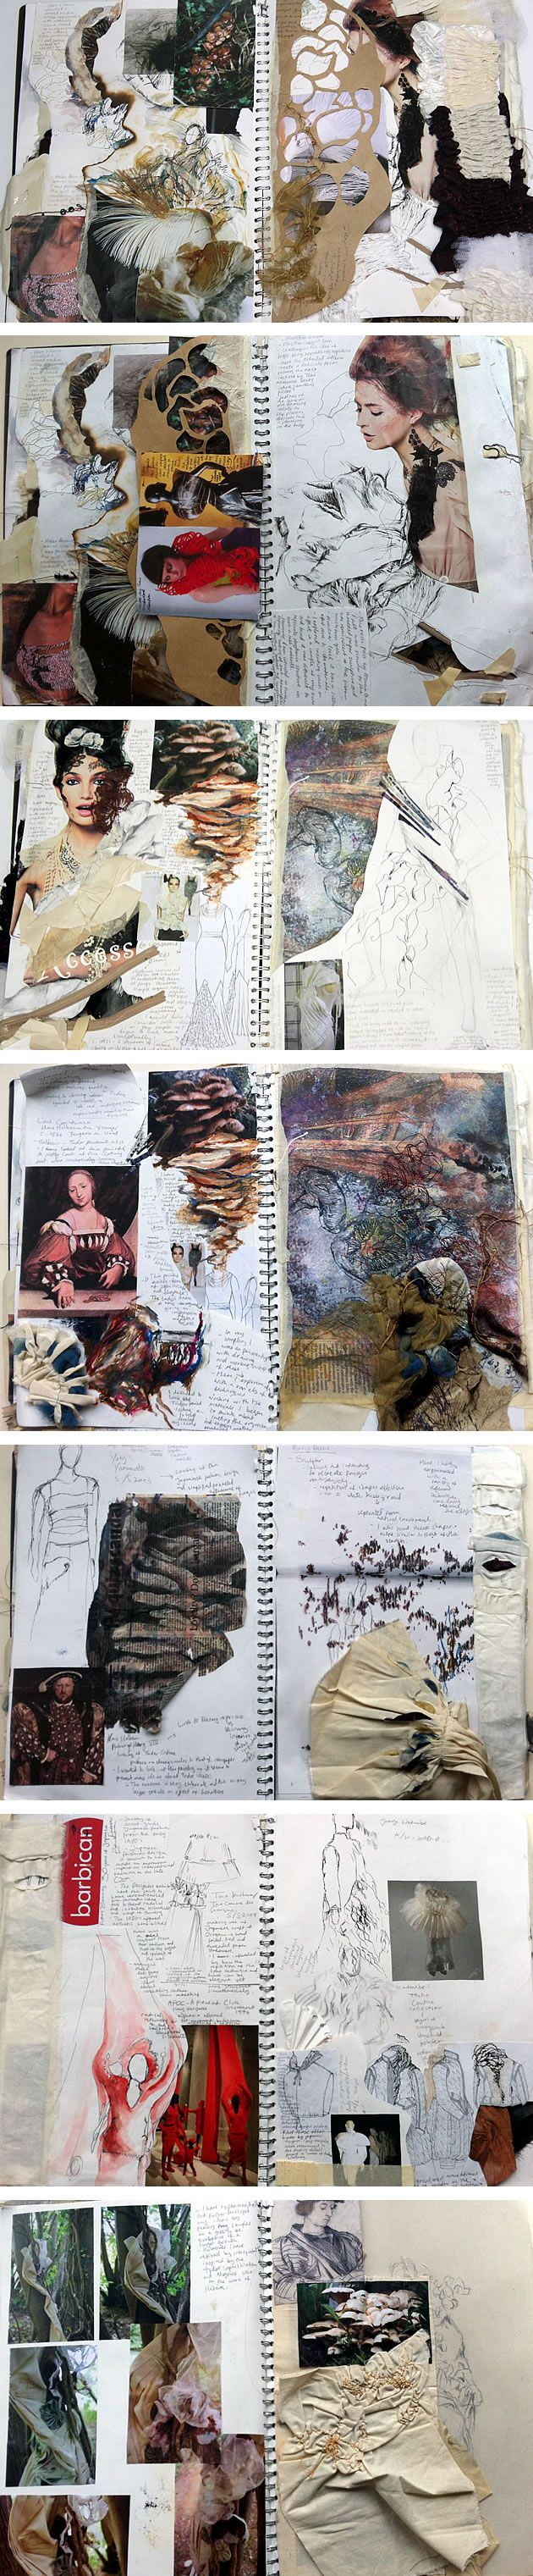 Not exactly quilts, but wonderful textile art and sketches:  A Level Textiles portfolio.  Click through to see more images and read about the process.